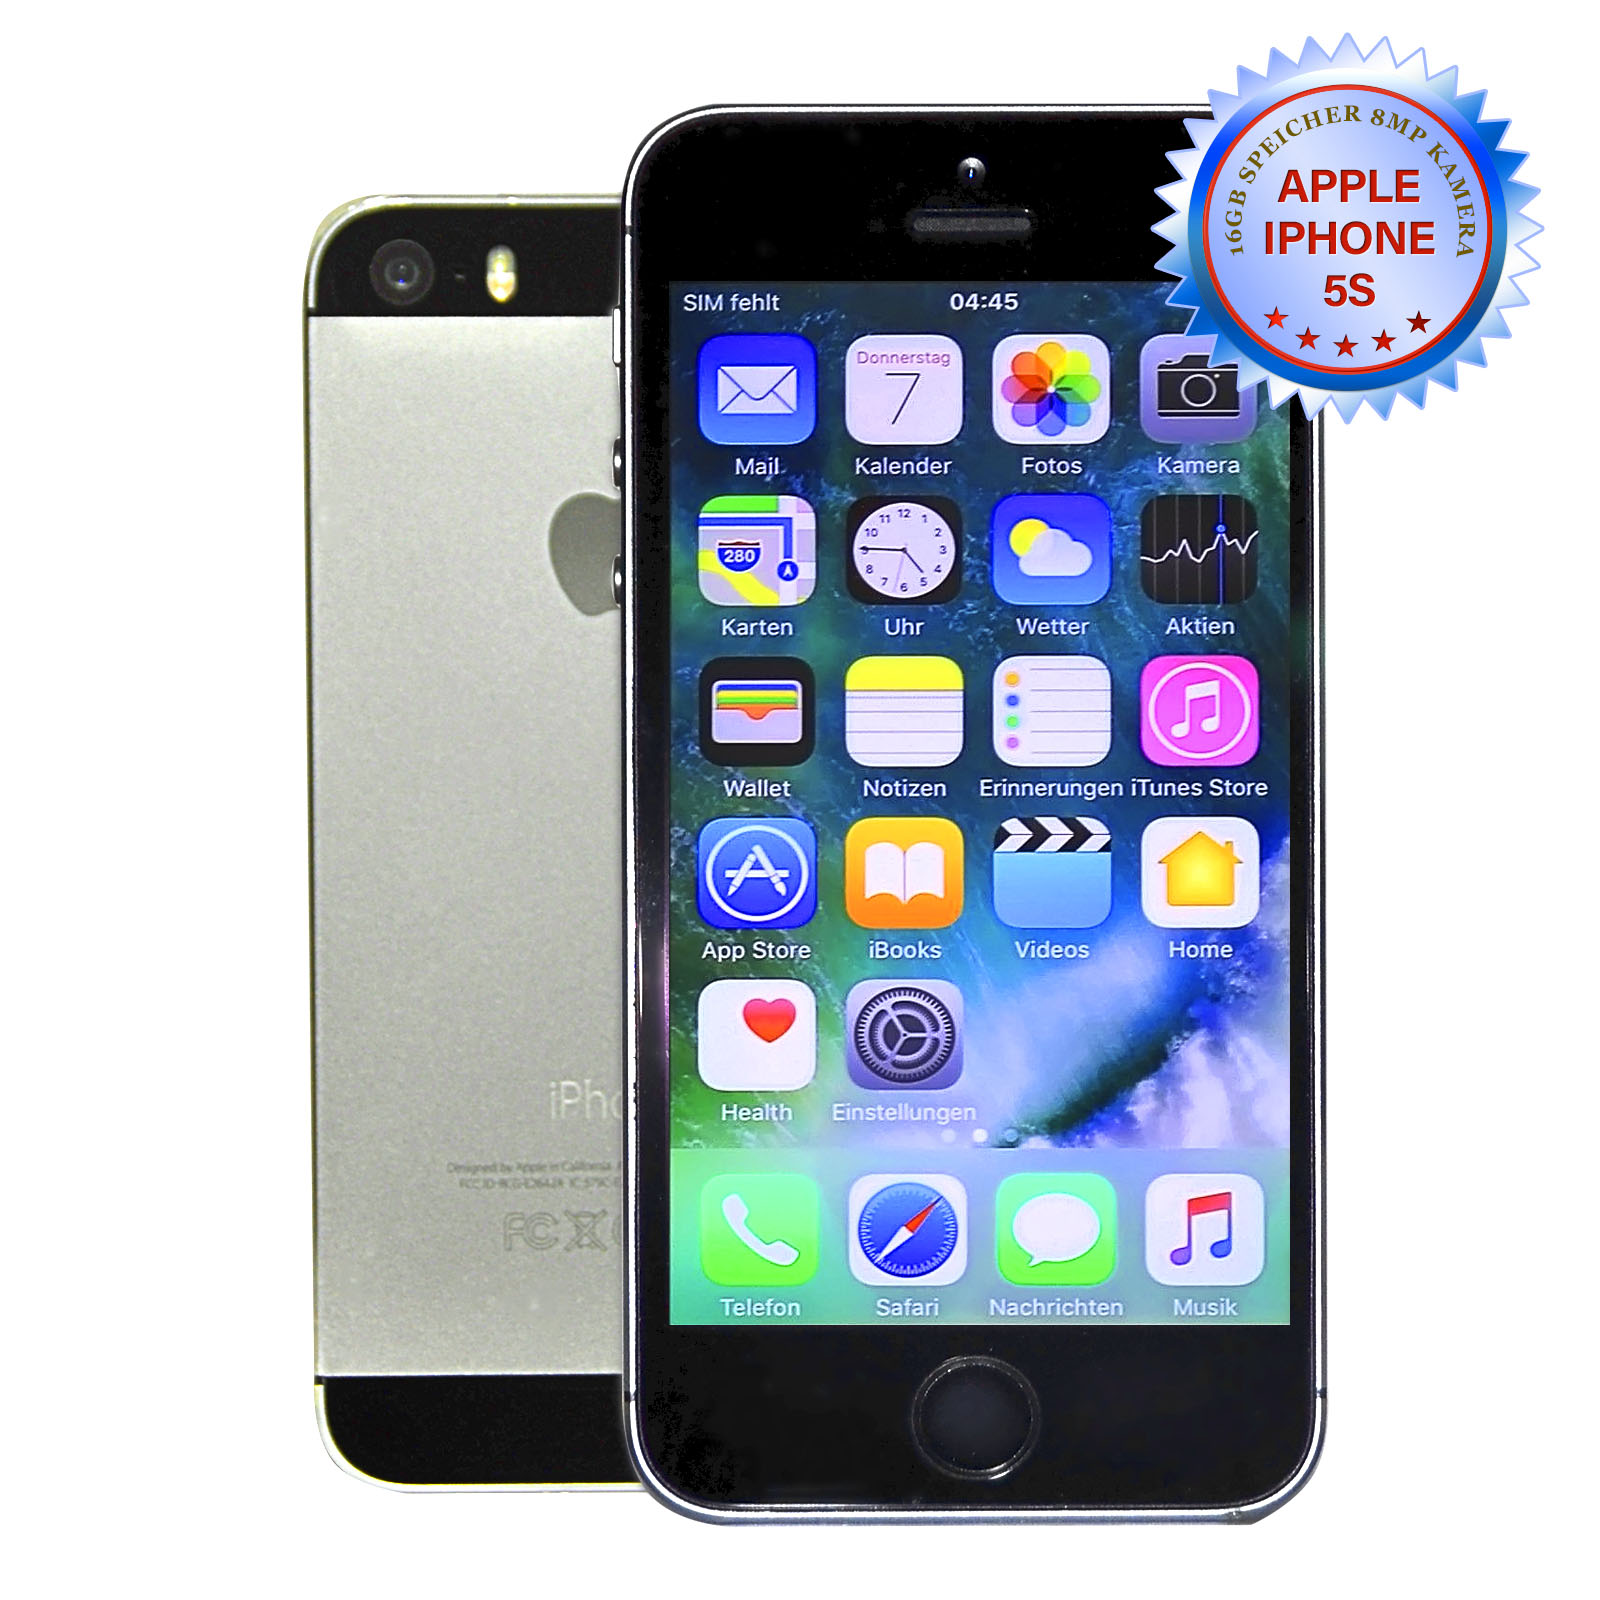 apple iphone 5s 16gb spacegrau ohne simlock smartphone. Black Bedroom Furniture Sets. Home Design Ideas